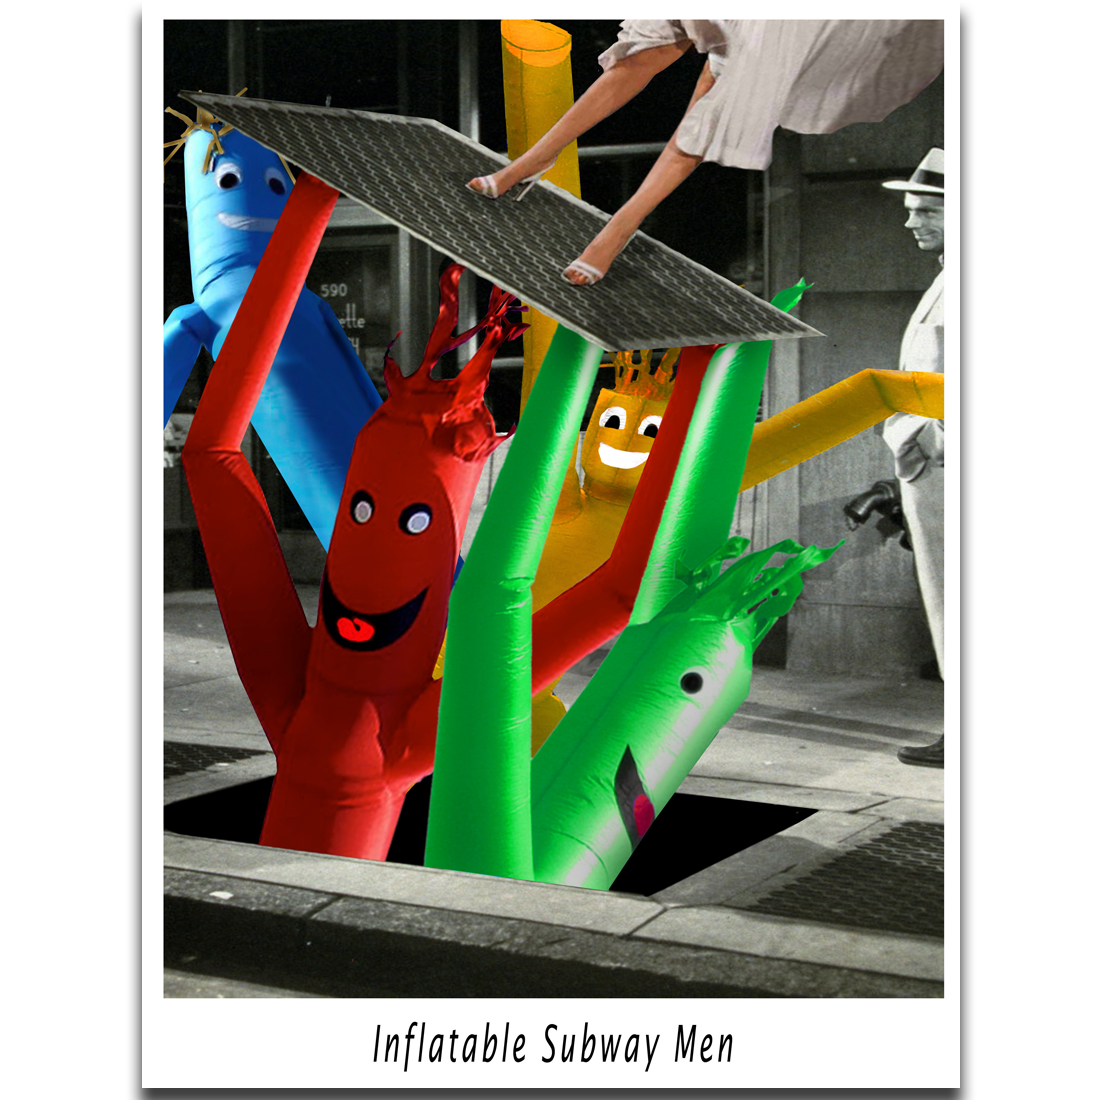 C006 - Inflatable Subway Men